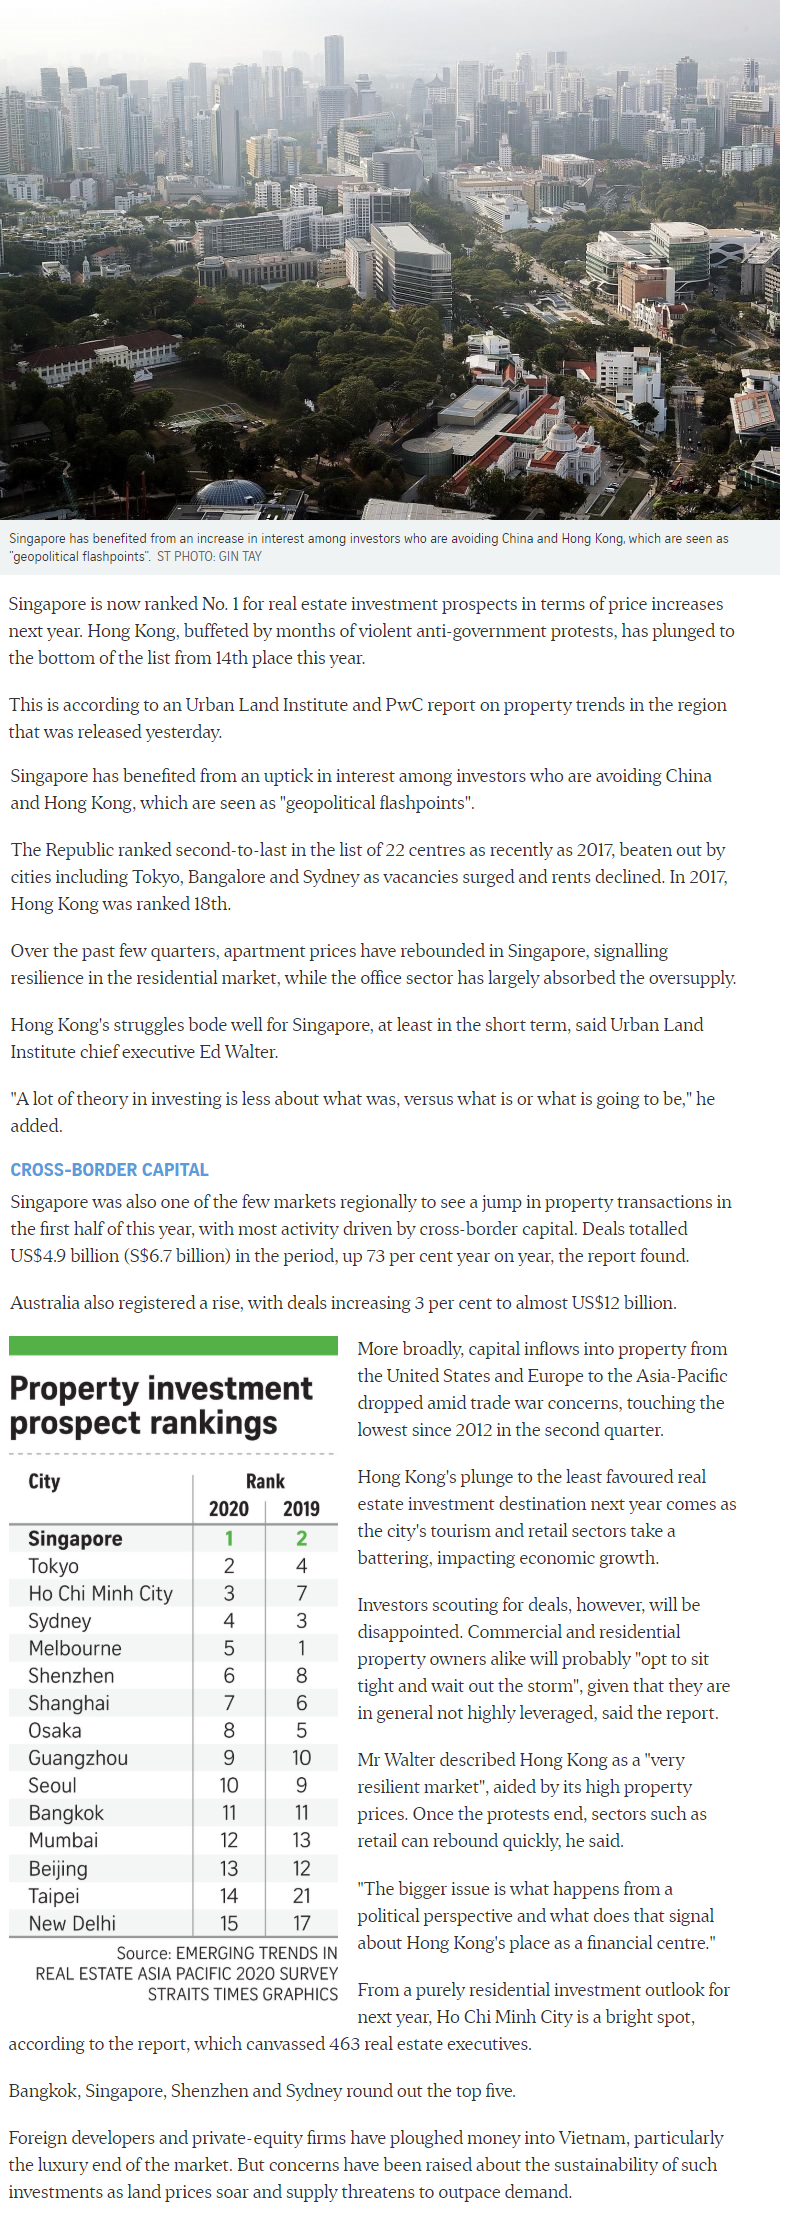 The Line @ Tanjong Rhu - Singapore Tops Region For Property Investment Prospects